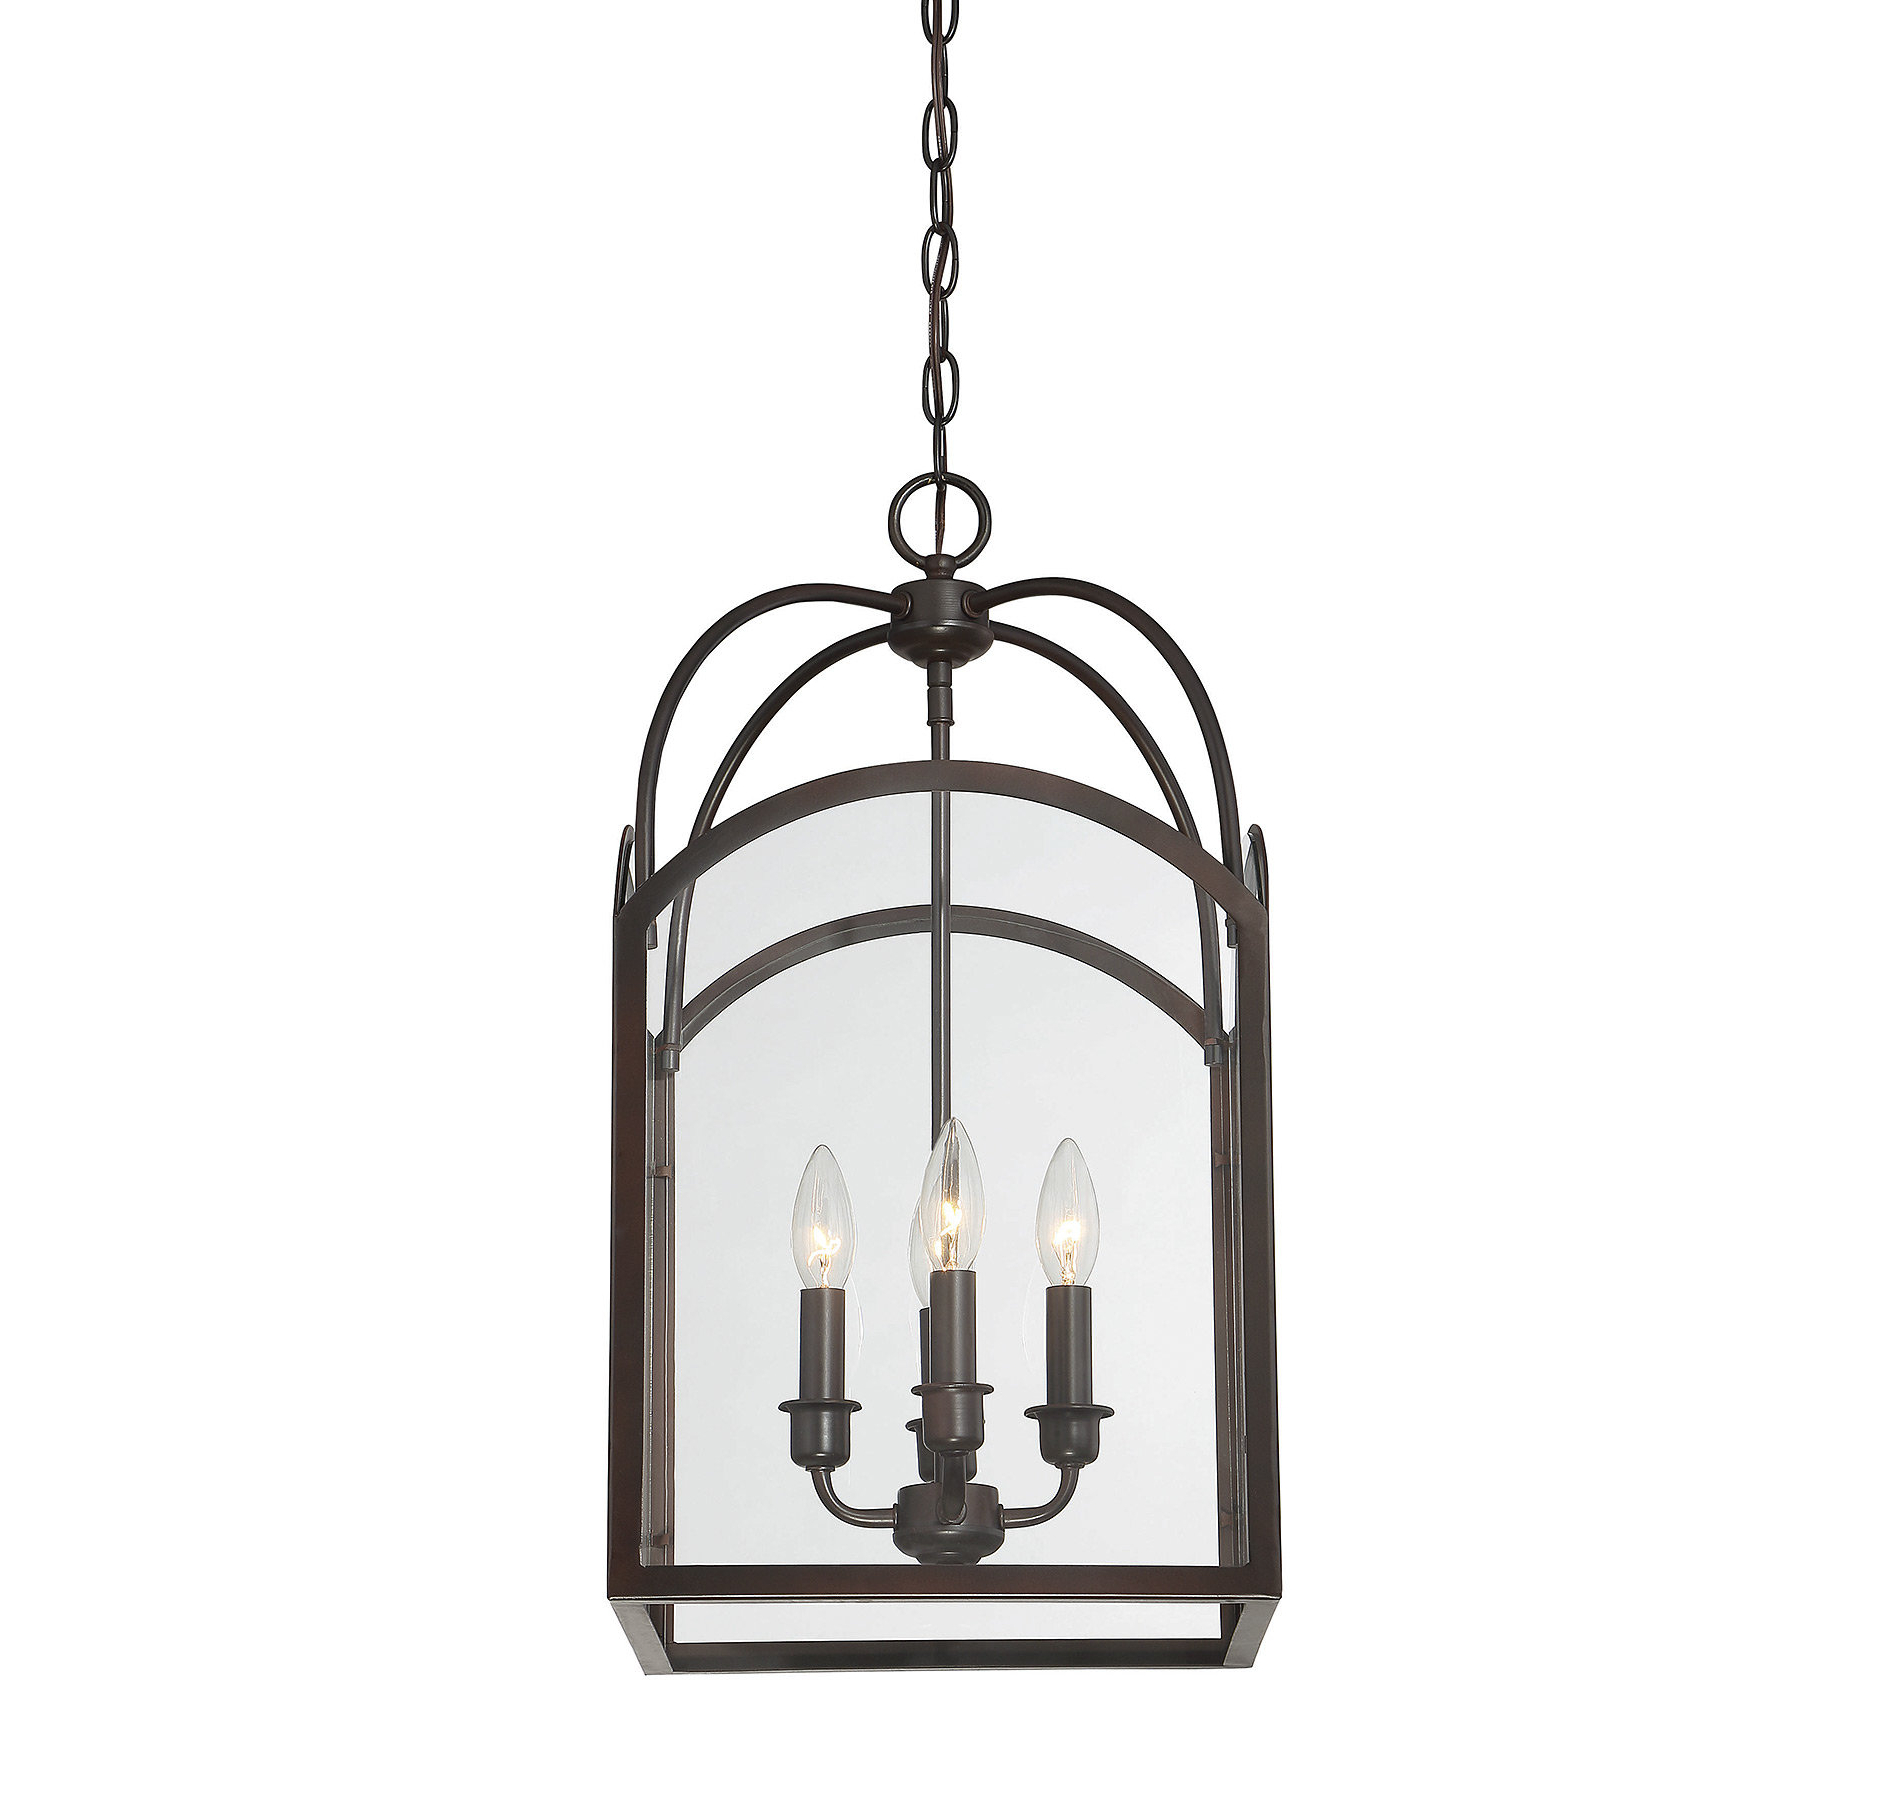 Taya 4 Light Lantern Square Pendants Intended For Well Known Mount Airy 4 Light Lantern Geometric Pendant (View 9 of 20)